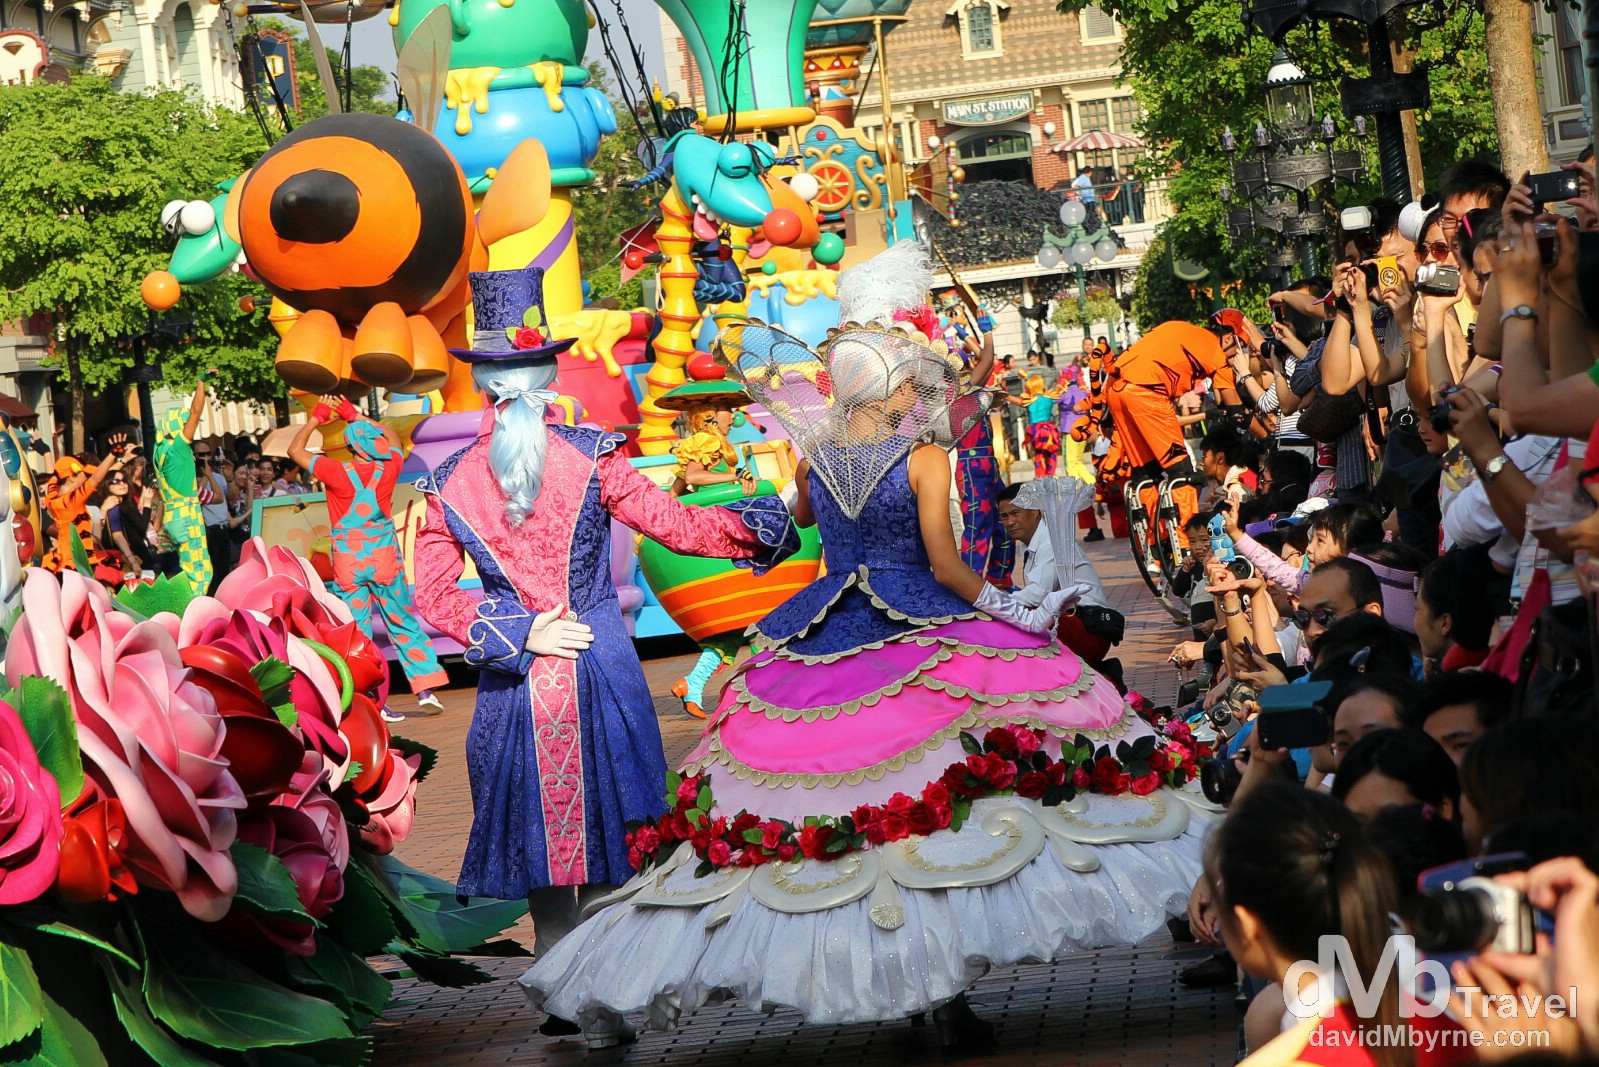 People enjoying the daily character parade at Disneyland Hong Kong. October 19th 2012.